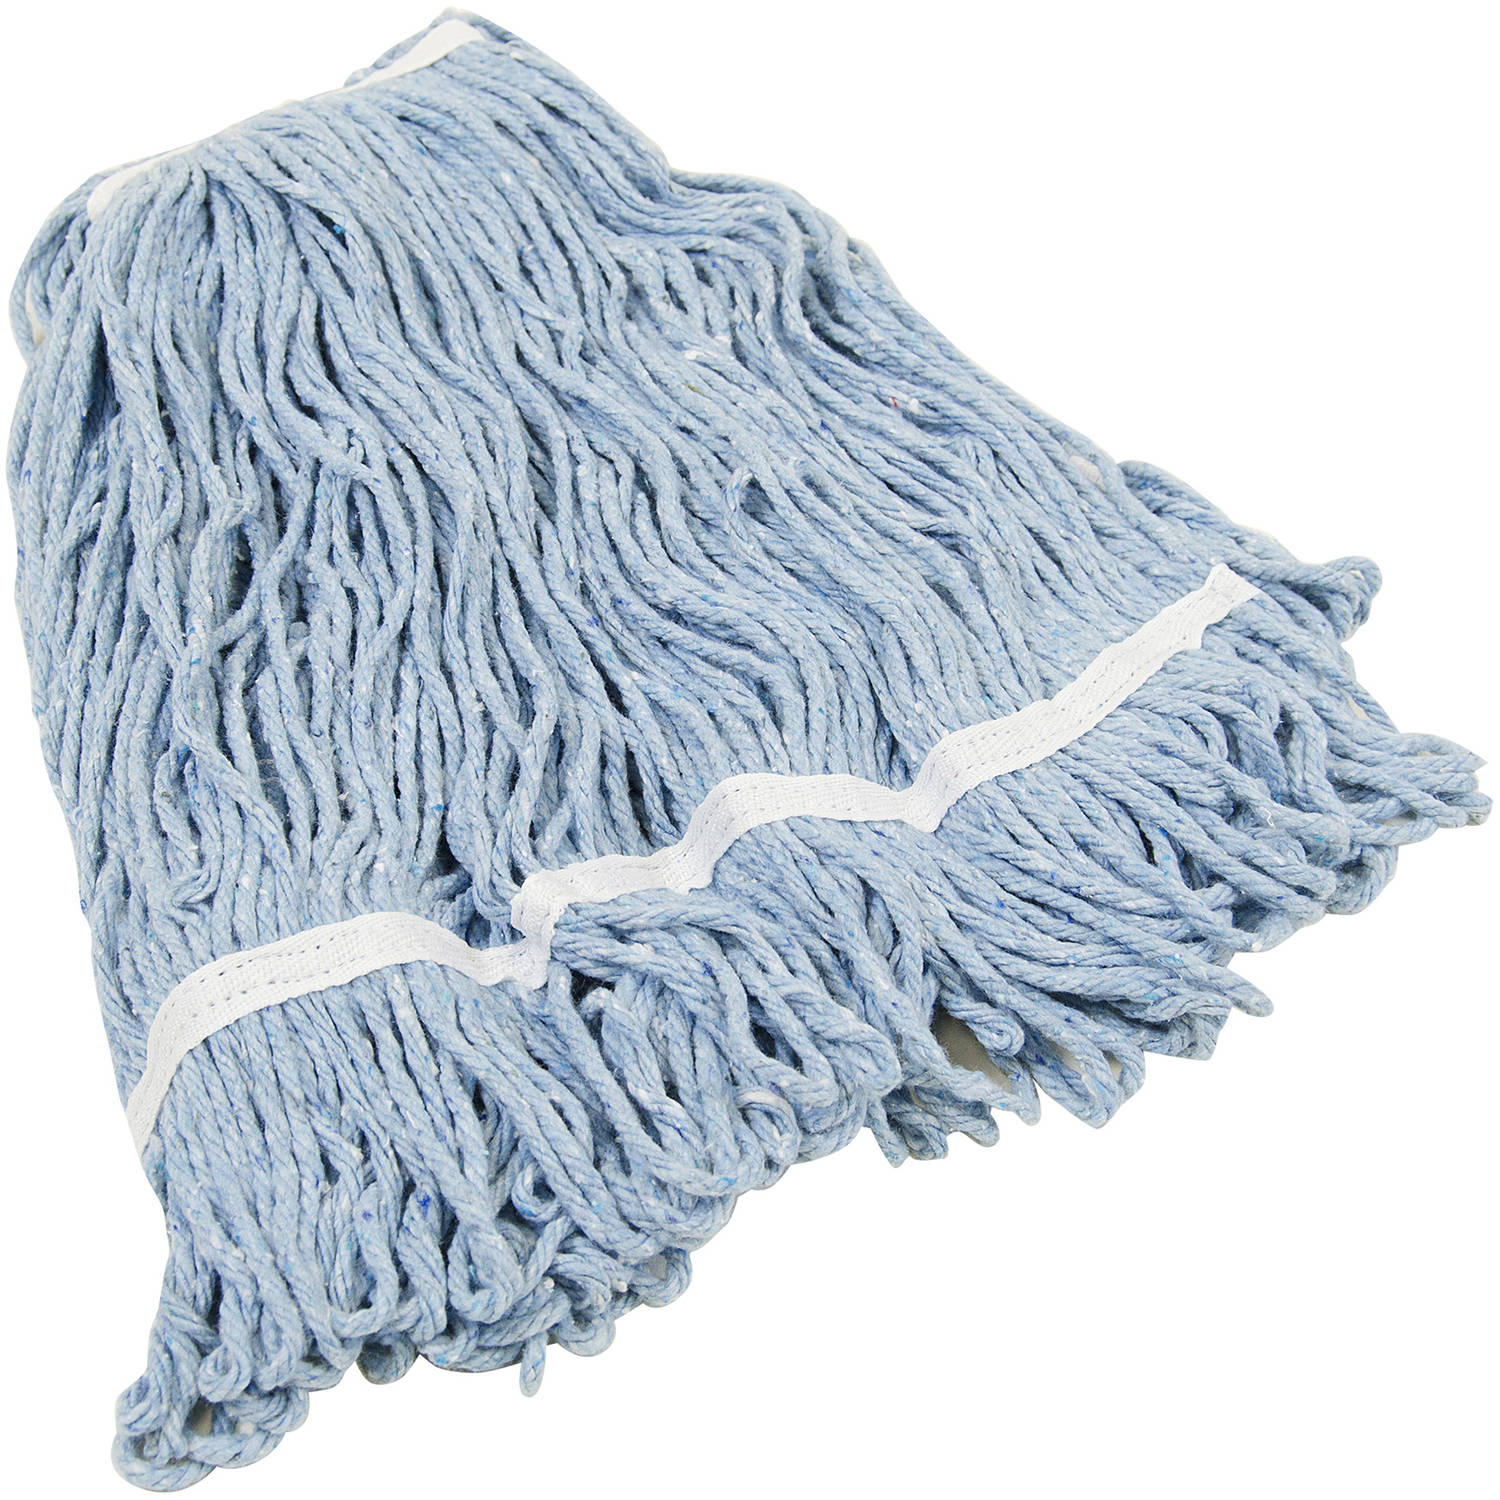 Quickie 16 oz Blended Wet Mop Refill